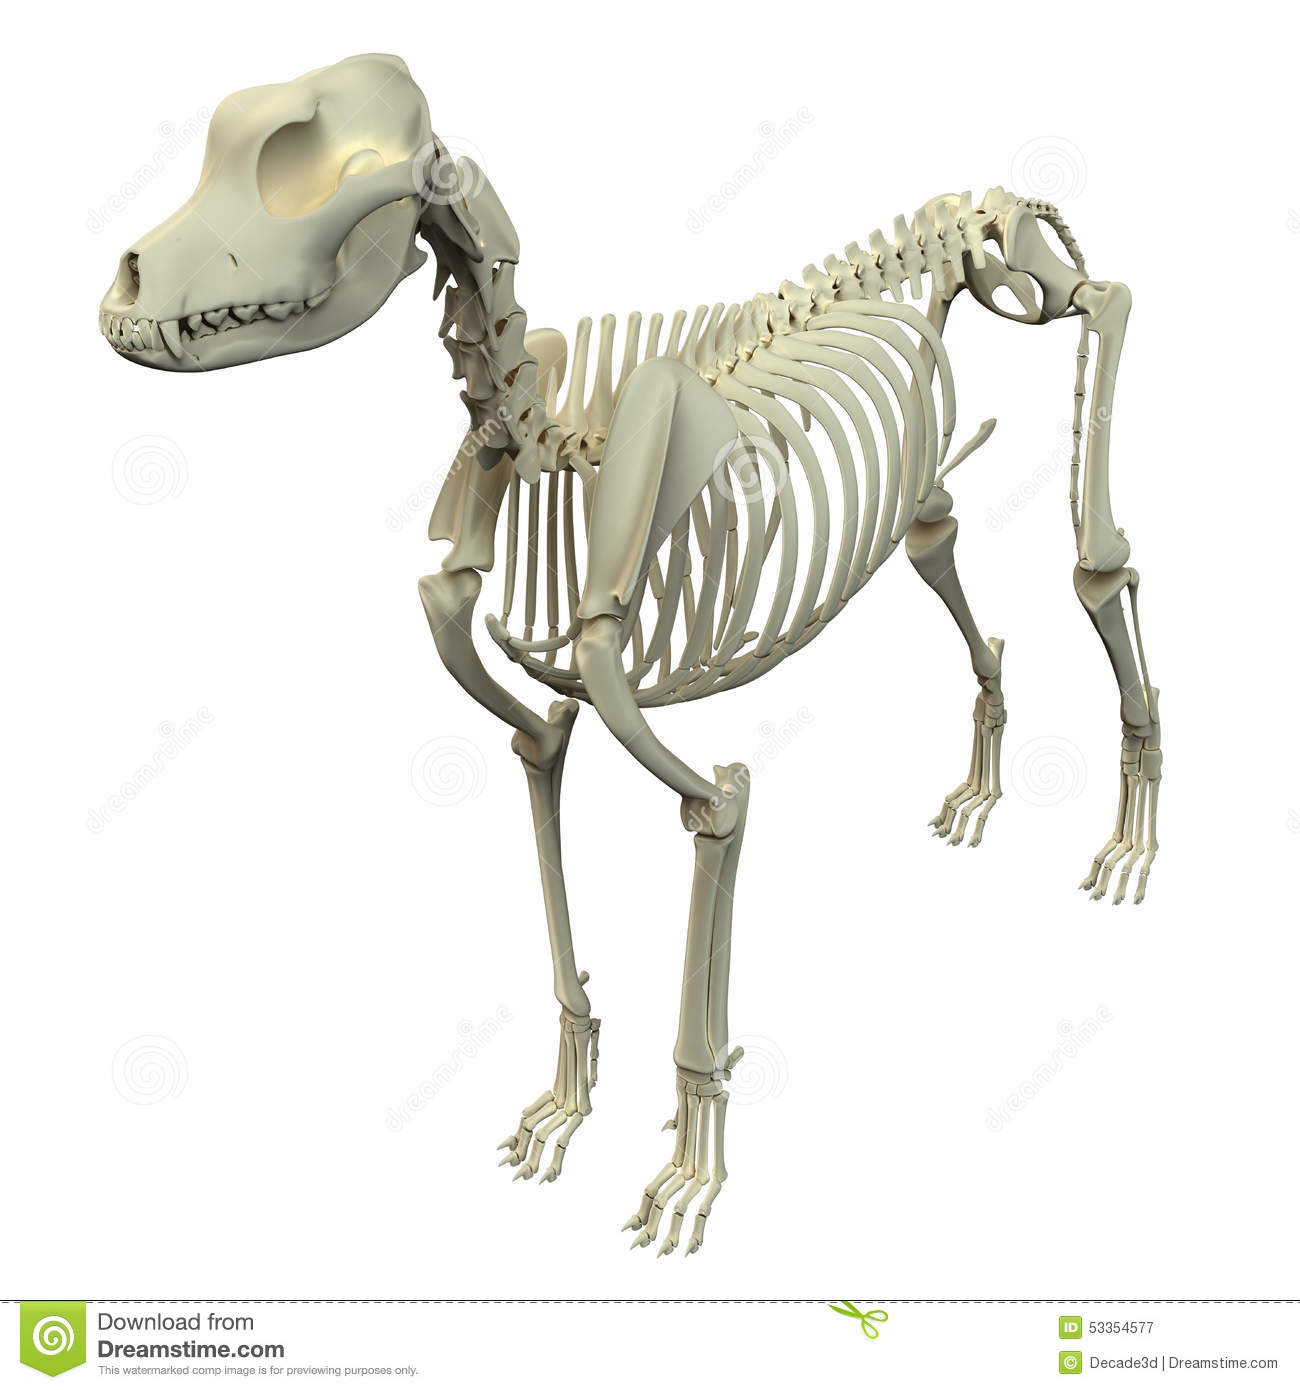 Skeleton Of Dog Anatomy Choice Image - human body anatomy